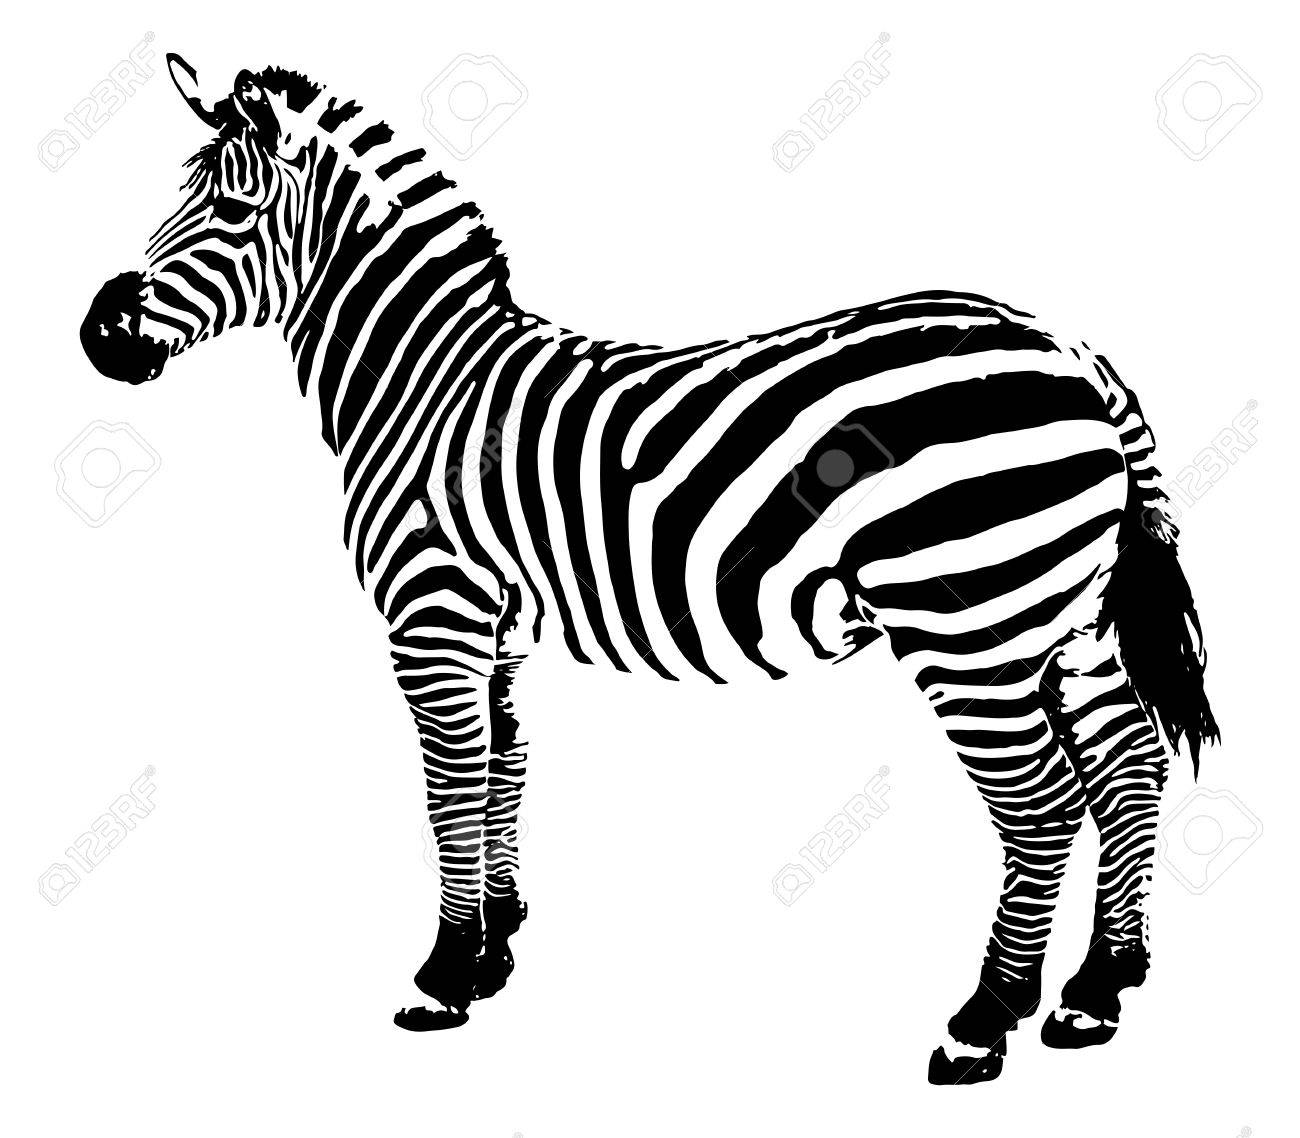 zebra illustration royalty free cliparts vectors and stock